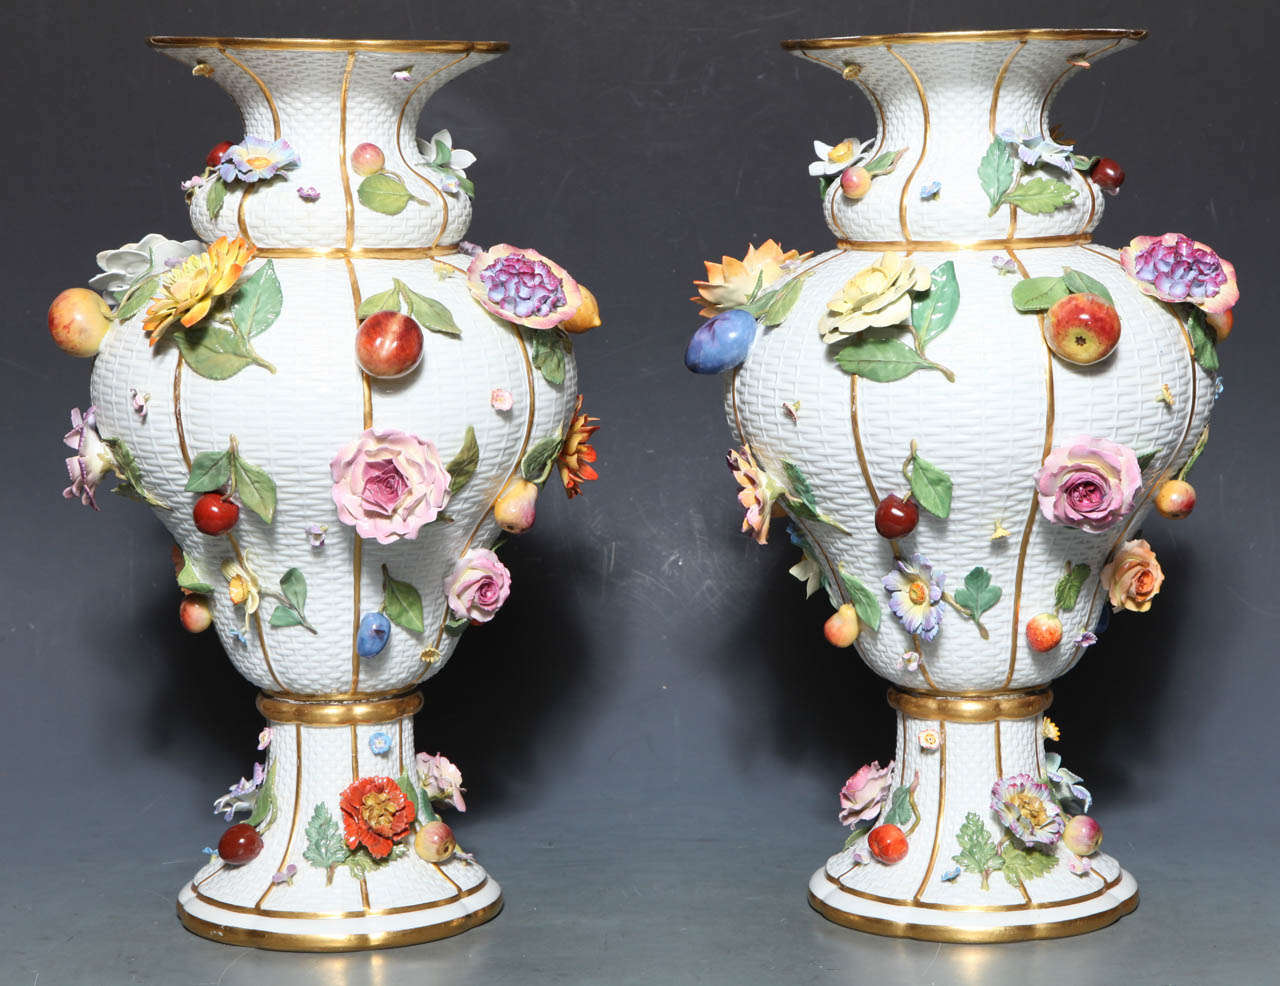 A monumental pair of 19th century Meissen Porcelain vases of exceptional quality. These Vases show one of Meissen's signature motifs, the realistically modeled fruits and flowers (raised on a basket weave background), to great advantage. The apples